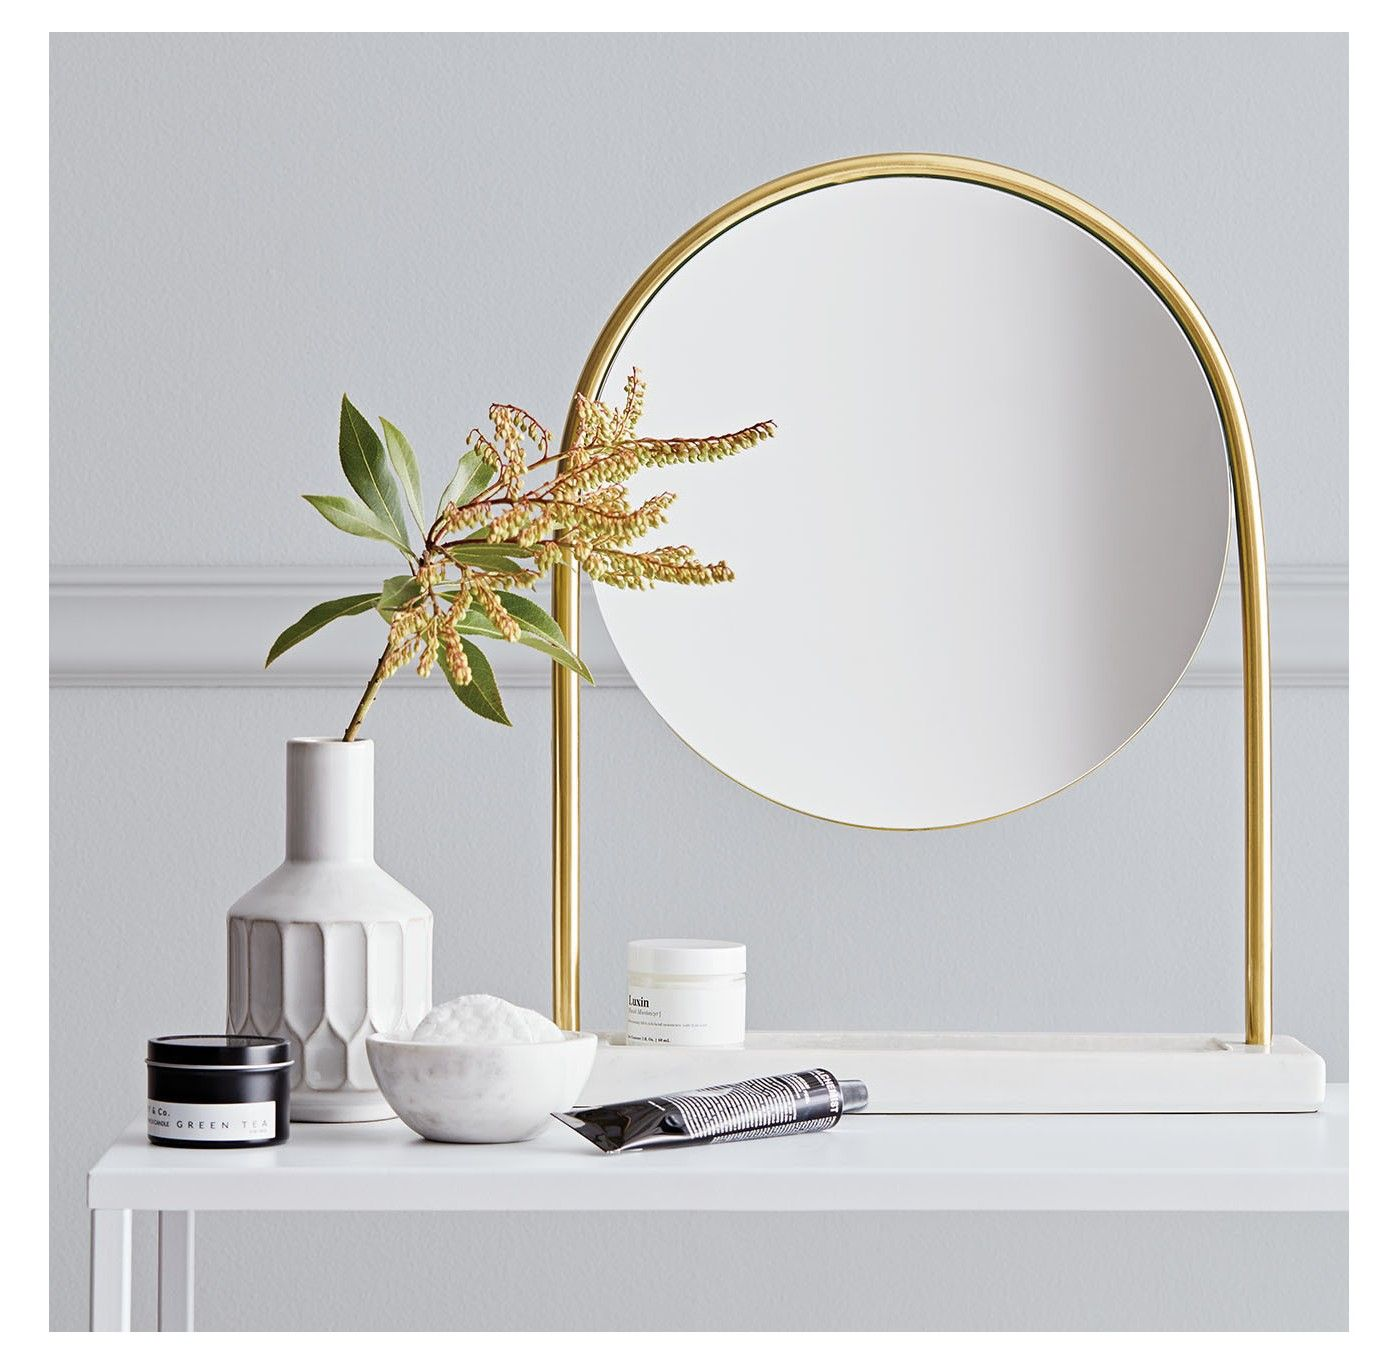 Round Vanity Mirror On Marble Stand Project 62 Target Freestanding Mirrors Target Home Decor Decor